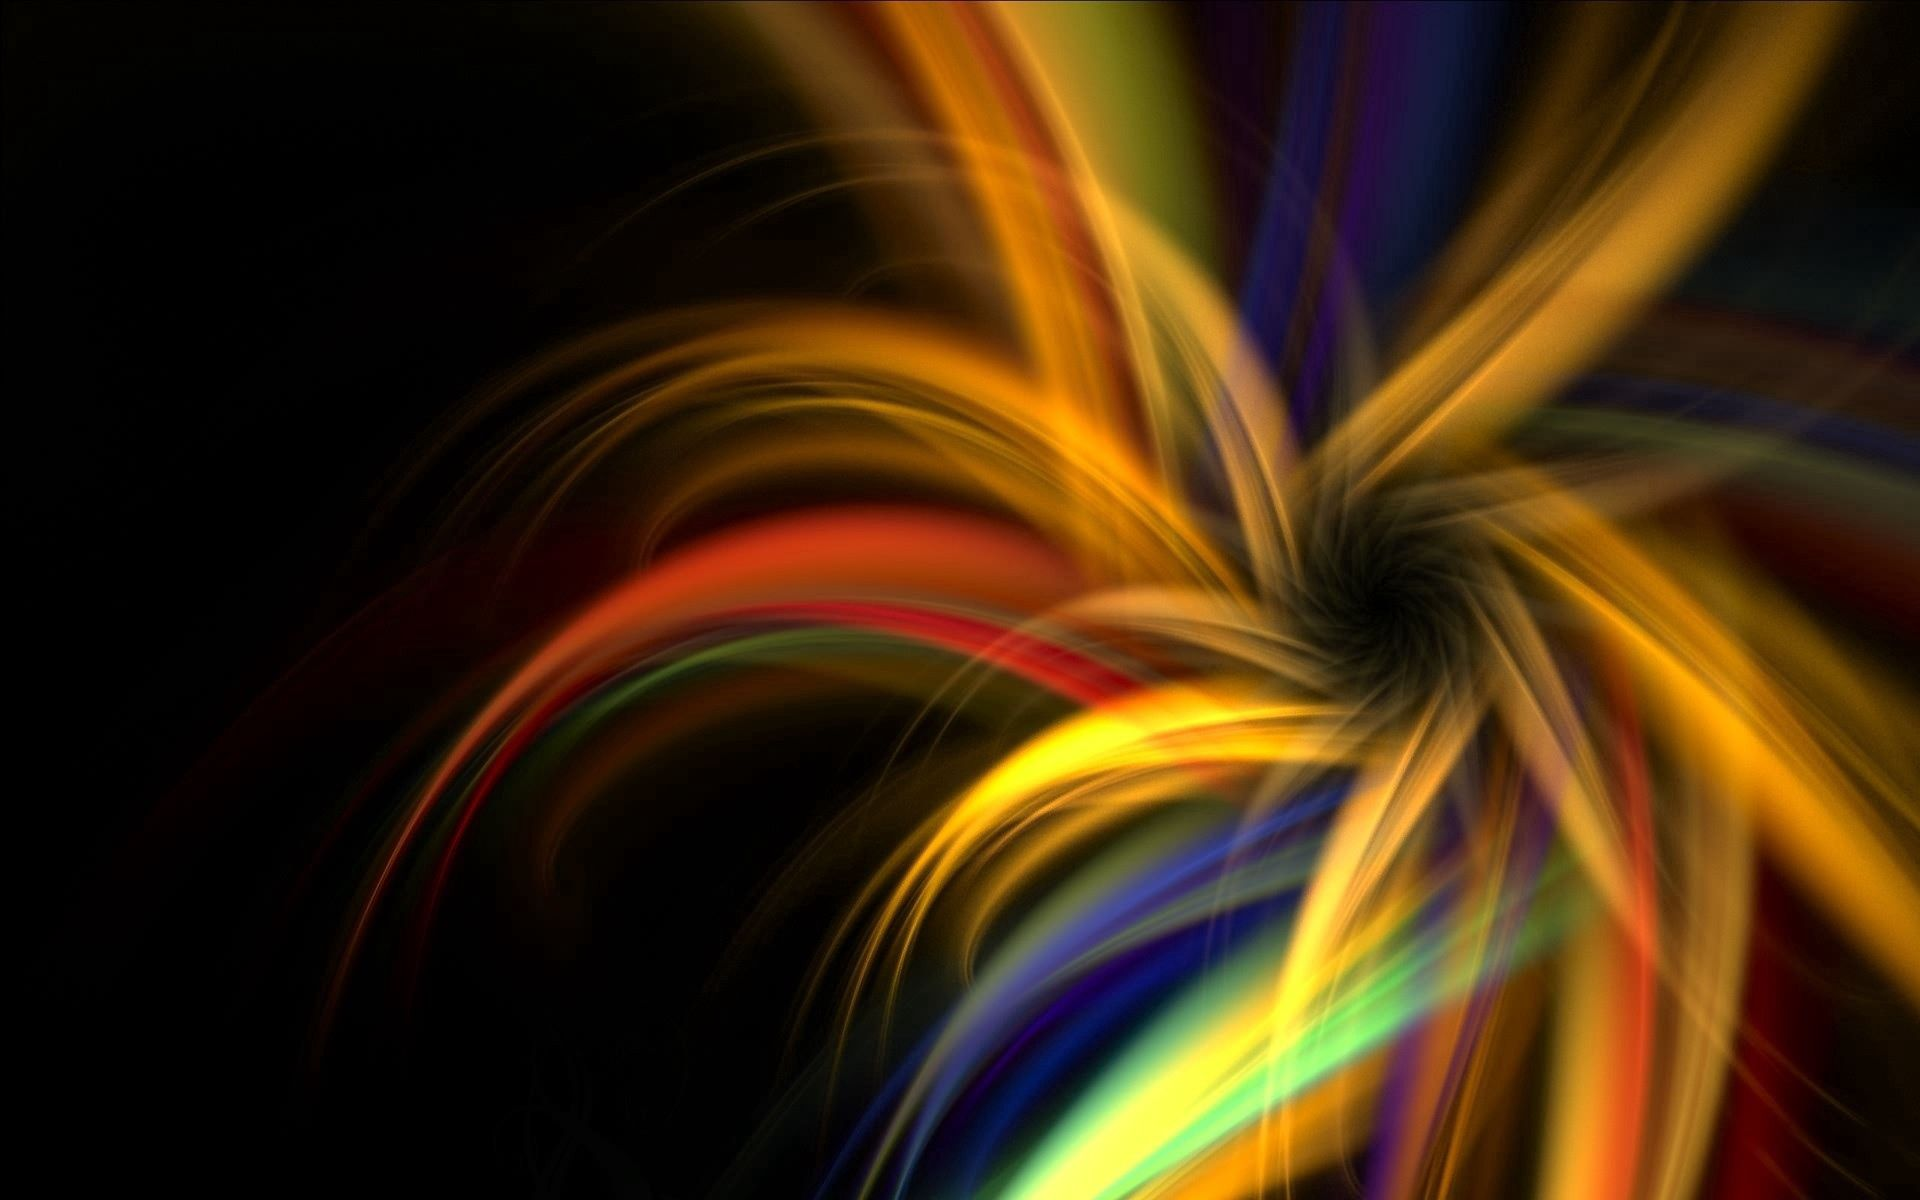 50841 download wallpaper Abstract, Flower, Form, Painting, Drawing, Paints, Smoke screensavers and pictures for free